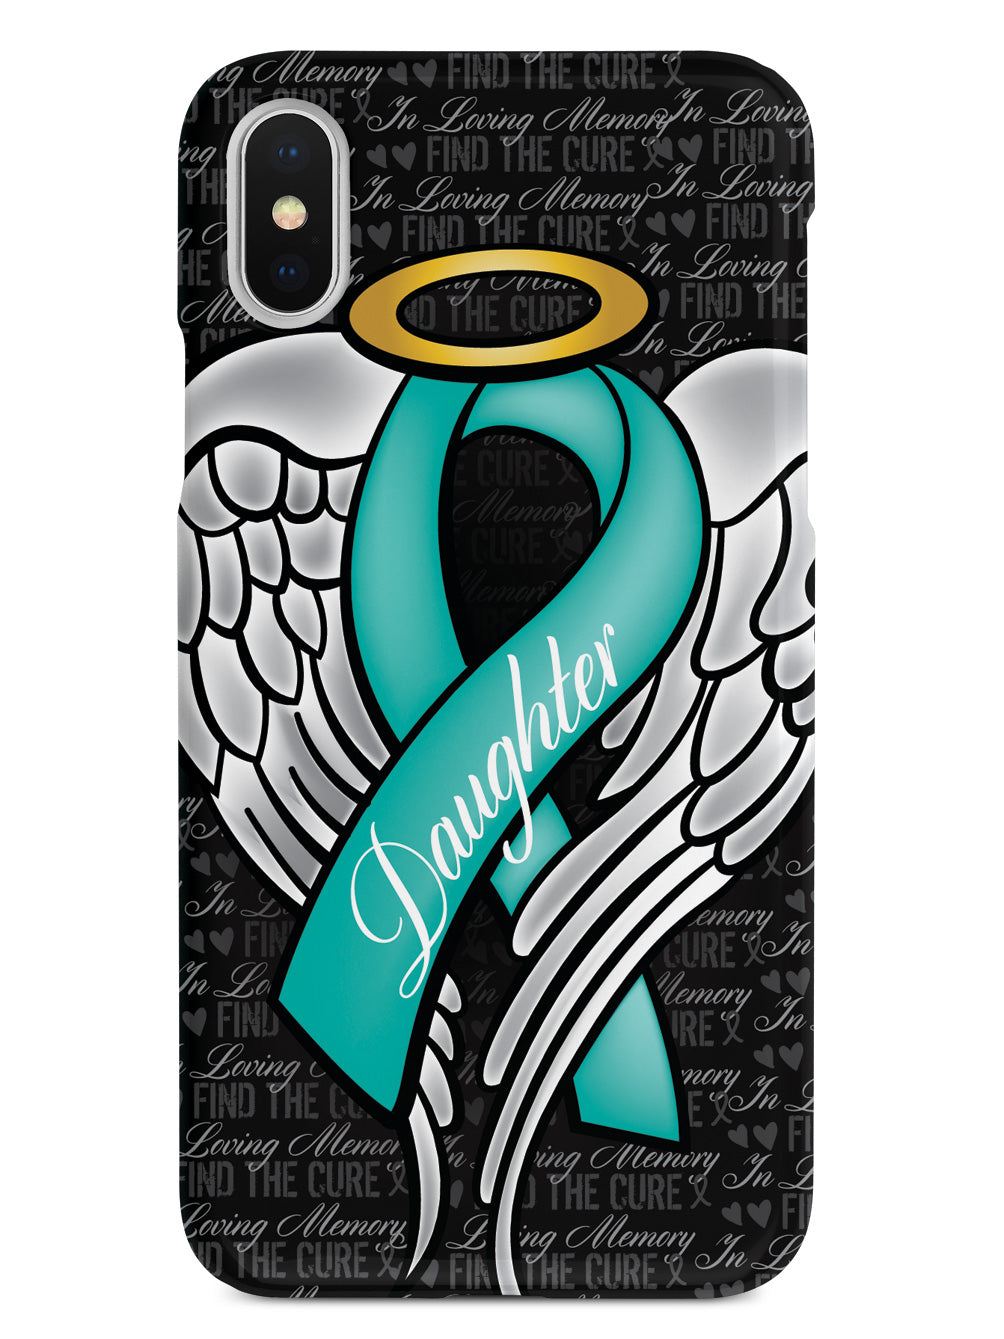 In Loving Memory of My Daughter - Teal Ribbon Case